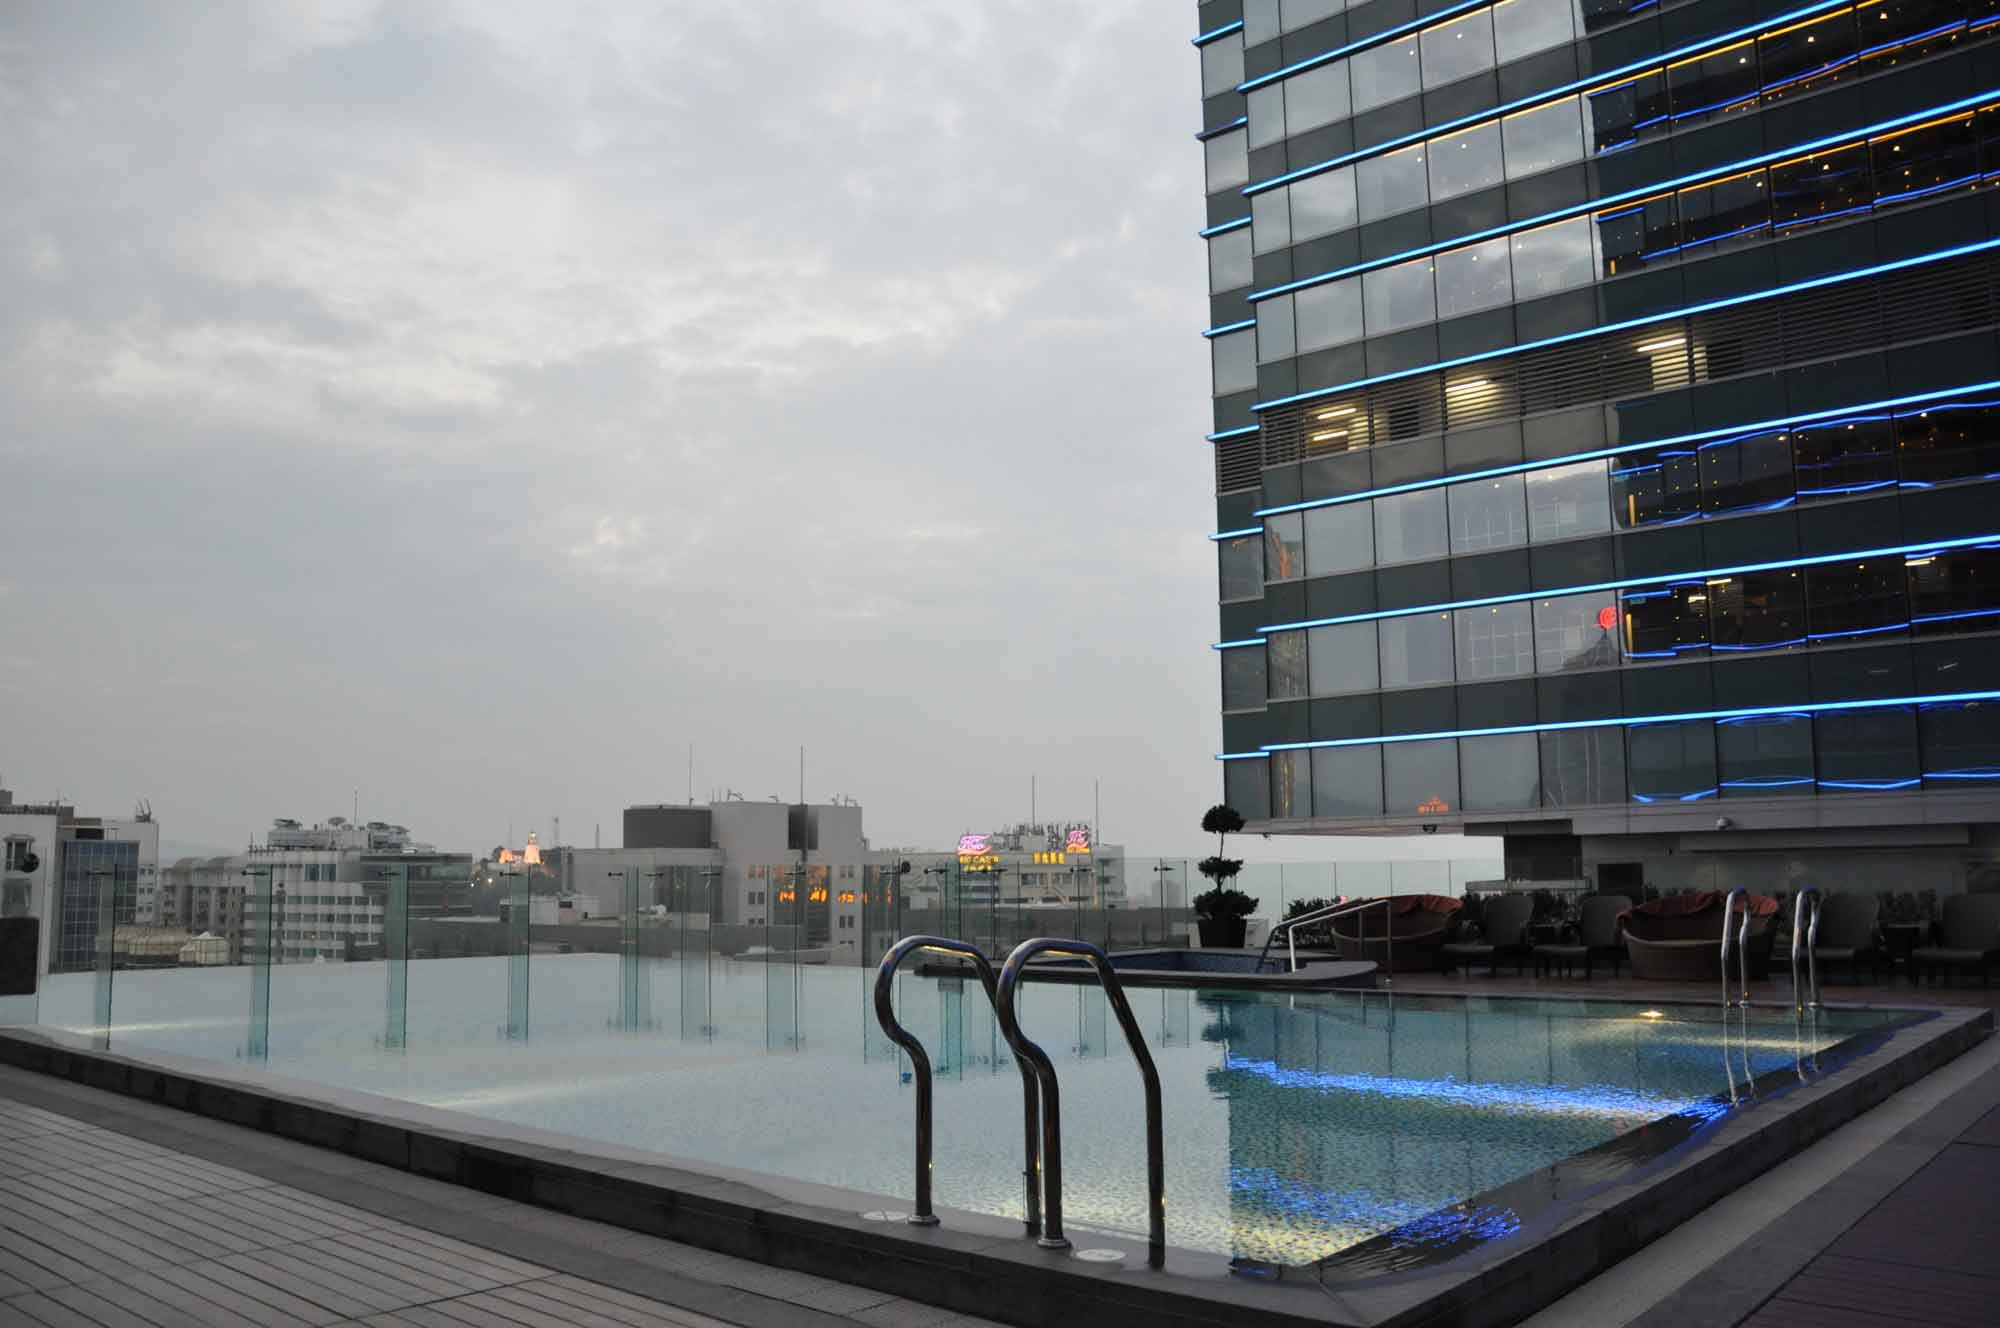 Starworld Macau pool